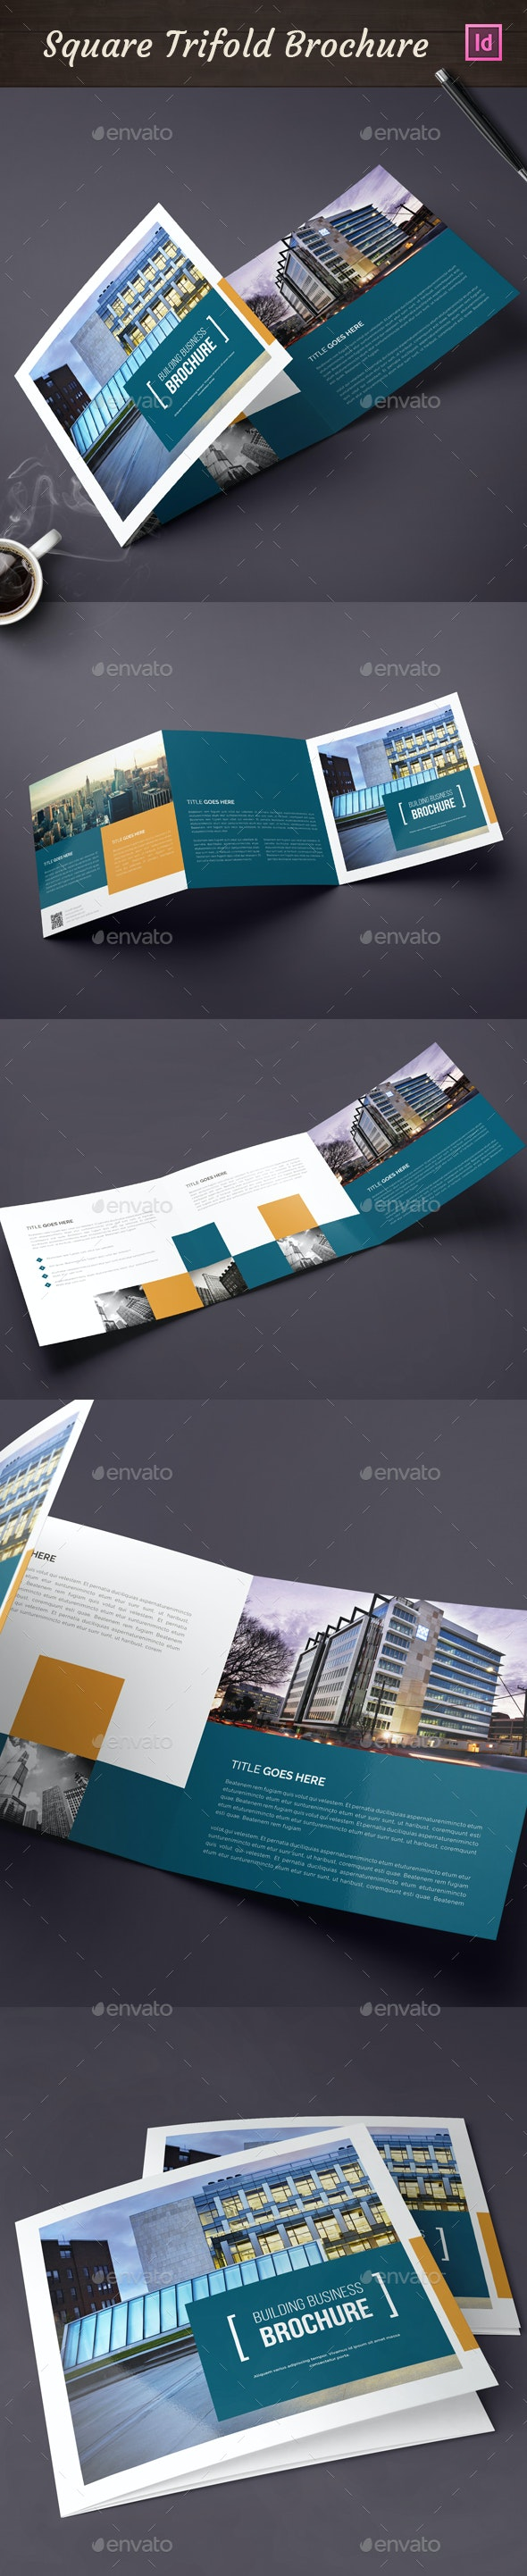 Square Trifold Brochure 02 - Corporate Brochures